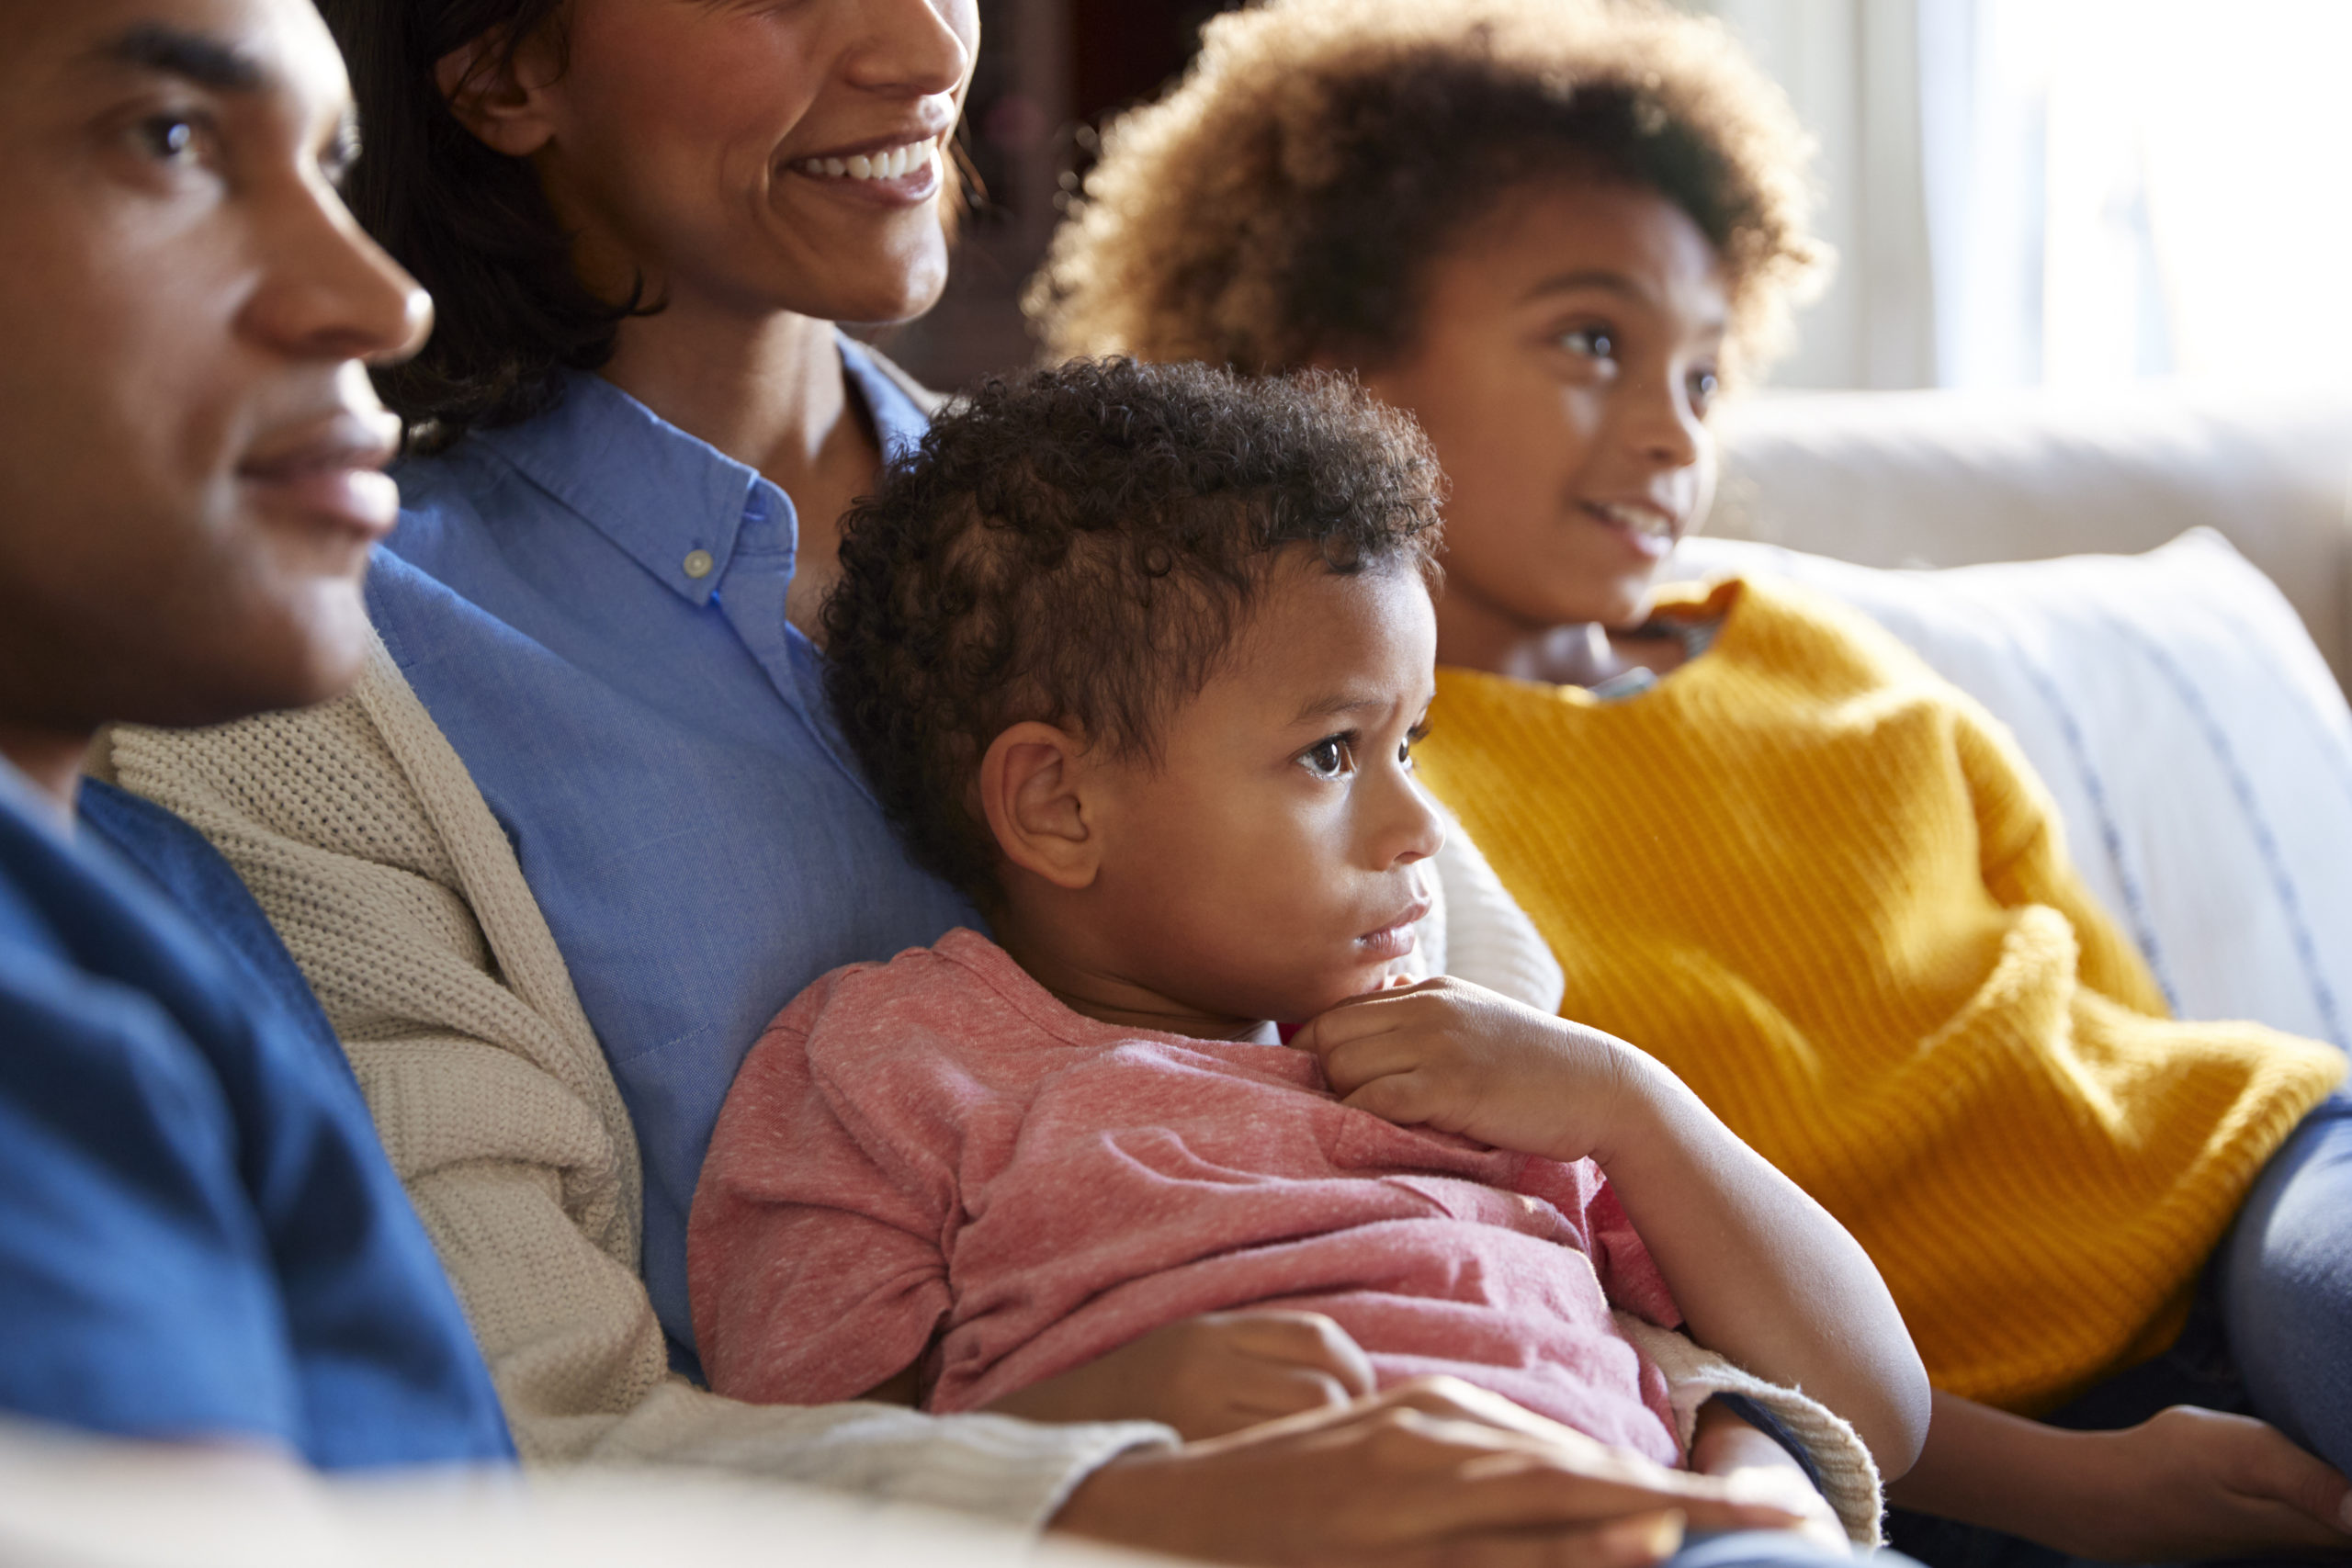 How to get Disney plus on Samsung TV https://elements.envato.com/children-sitting-on-the-sofa-in-their-living-room--EC8SNK6